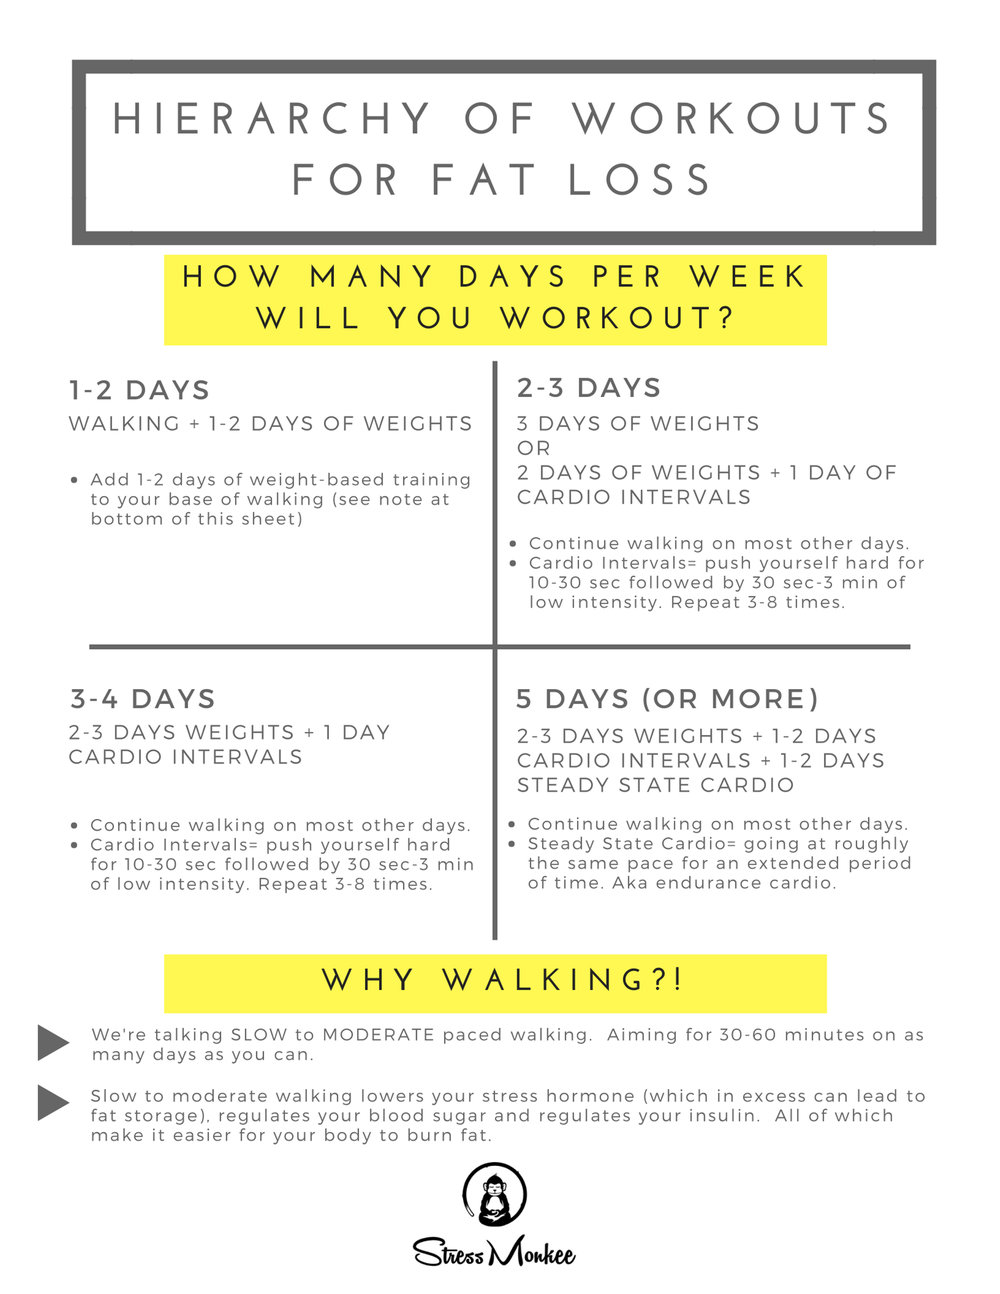 How to Prioritize Your Workouts for Fat Loss.jpg